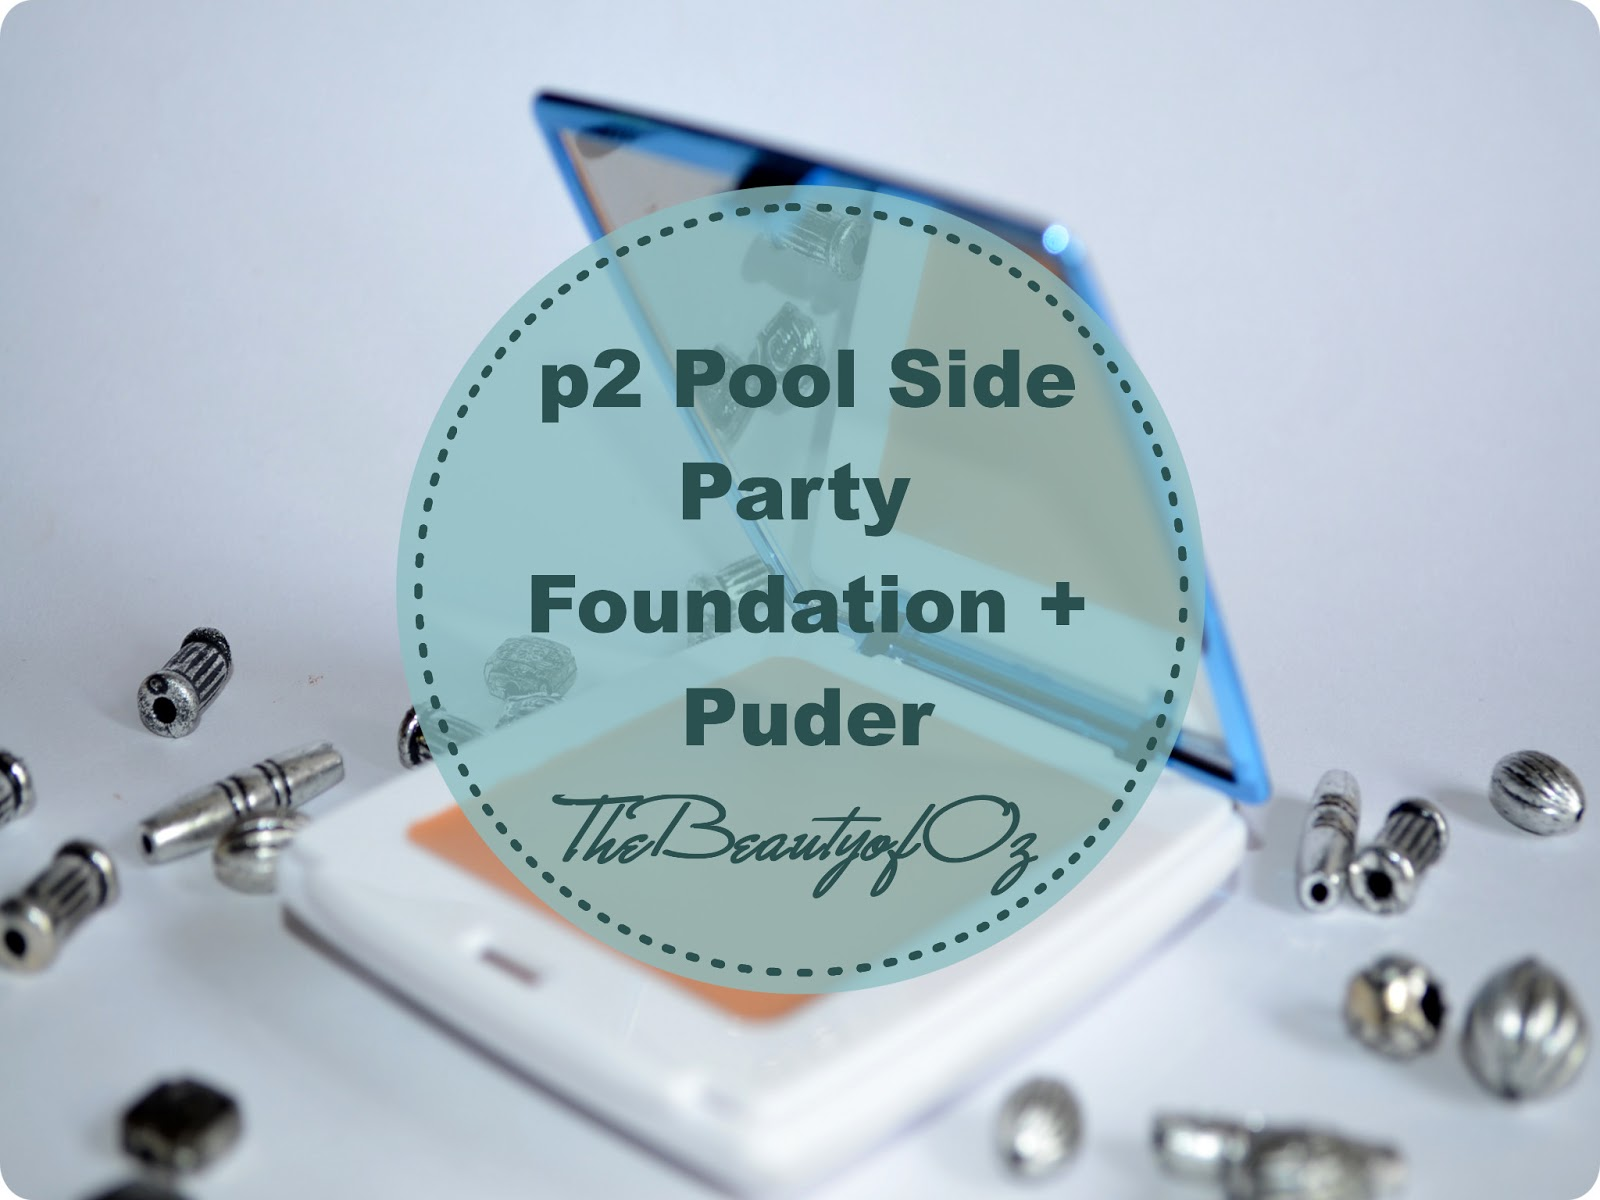 p2 Pool Side Party Foundation und Puder